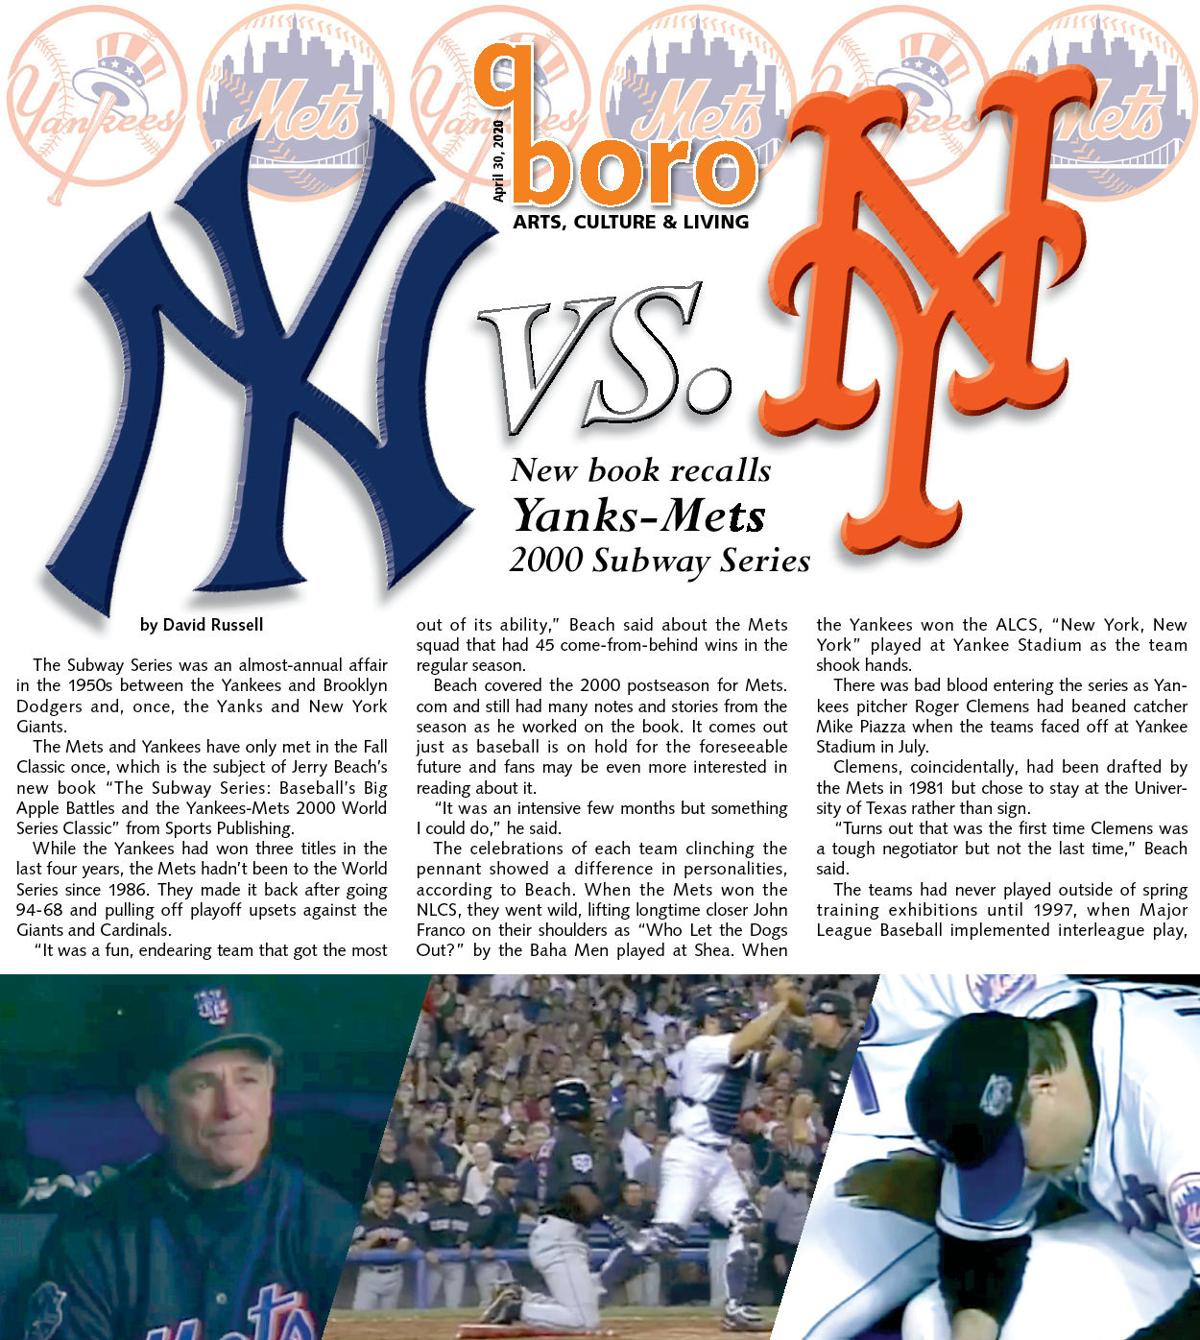 Looking back at only Mets-Yankees World Series 1